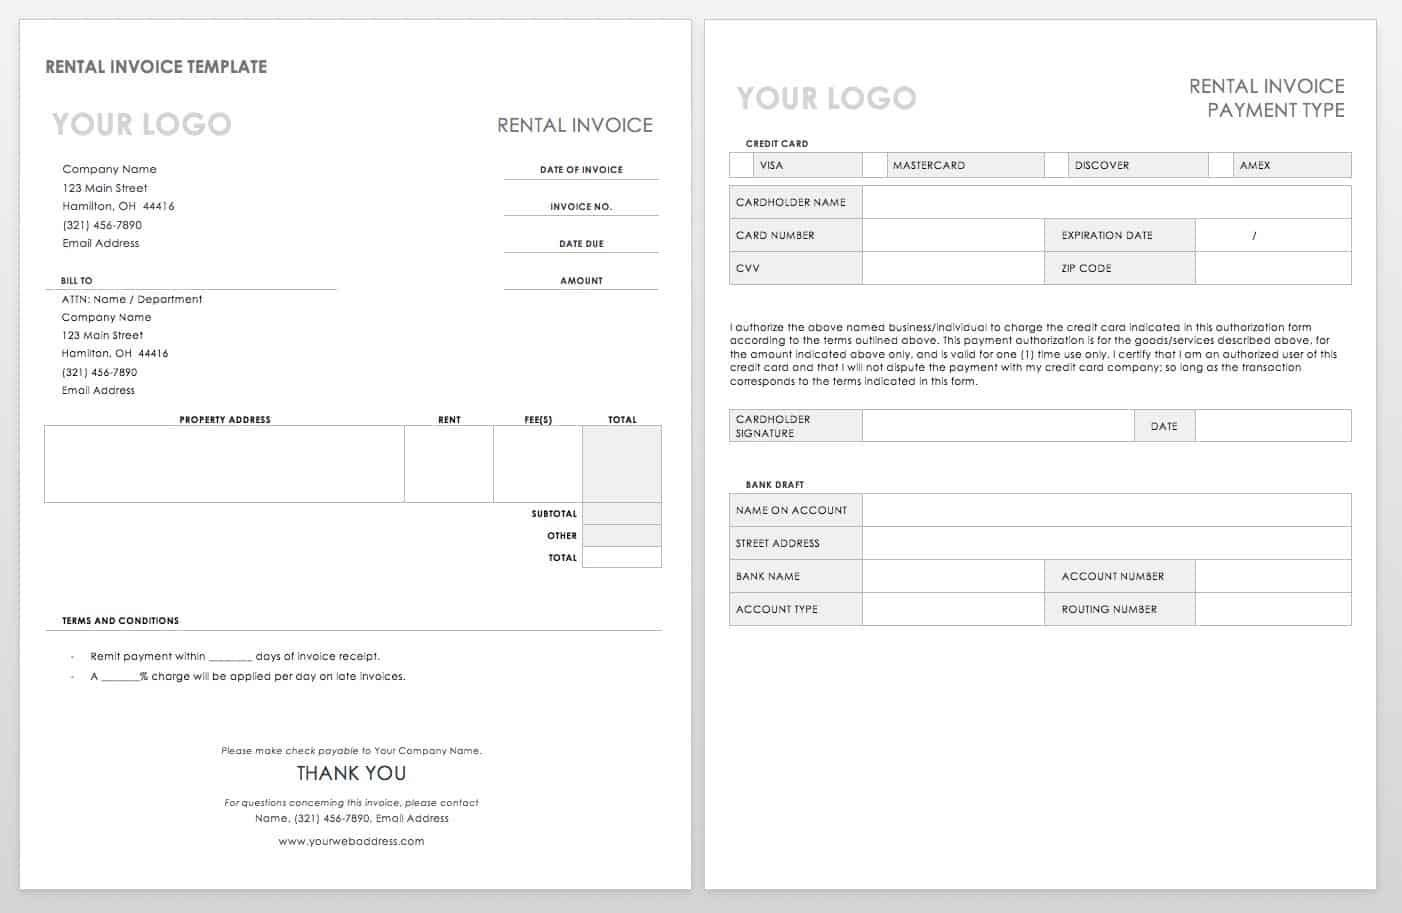 008 Stirring Free Blank Invoice Template Excel Inspiration  Download DownloadableFull